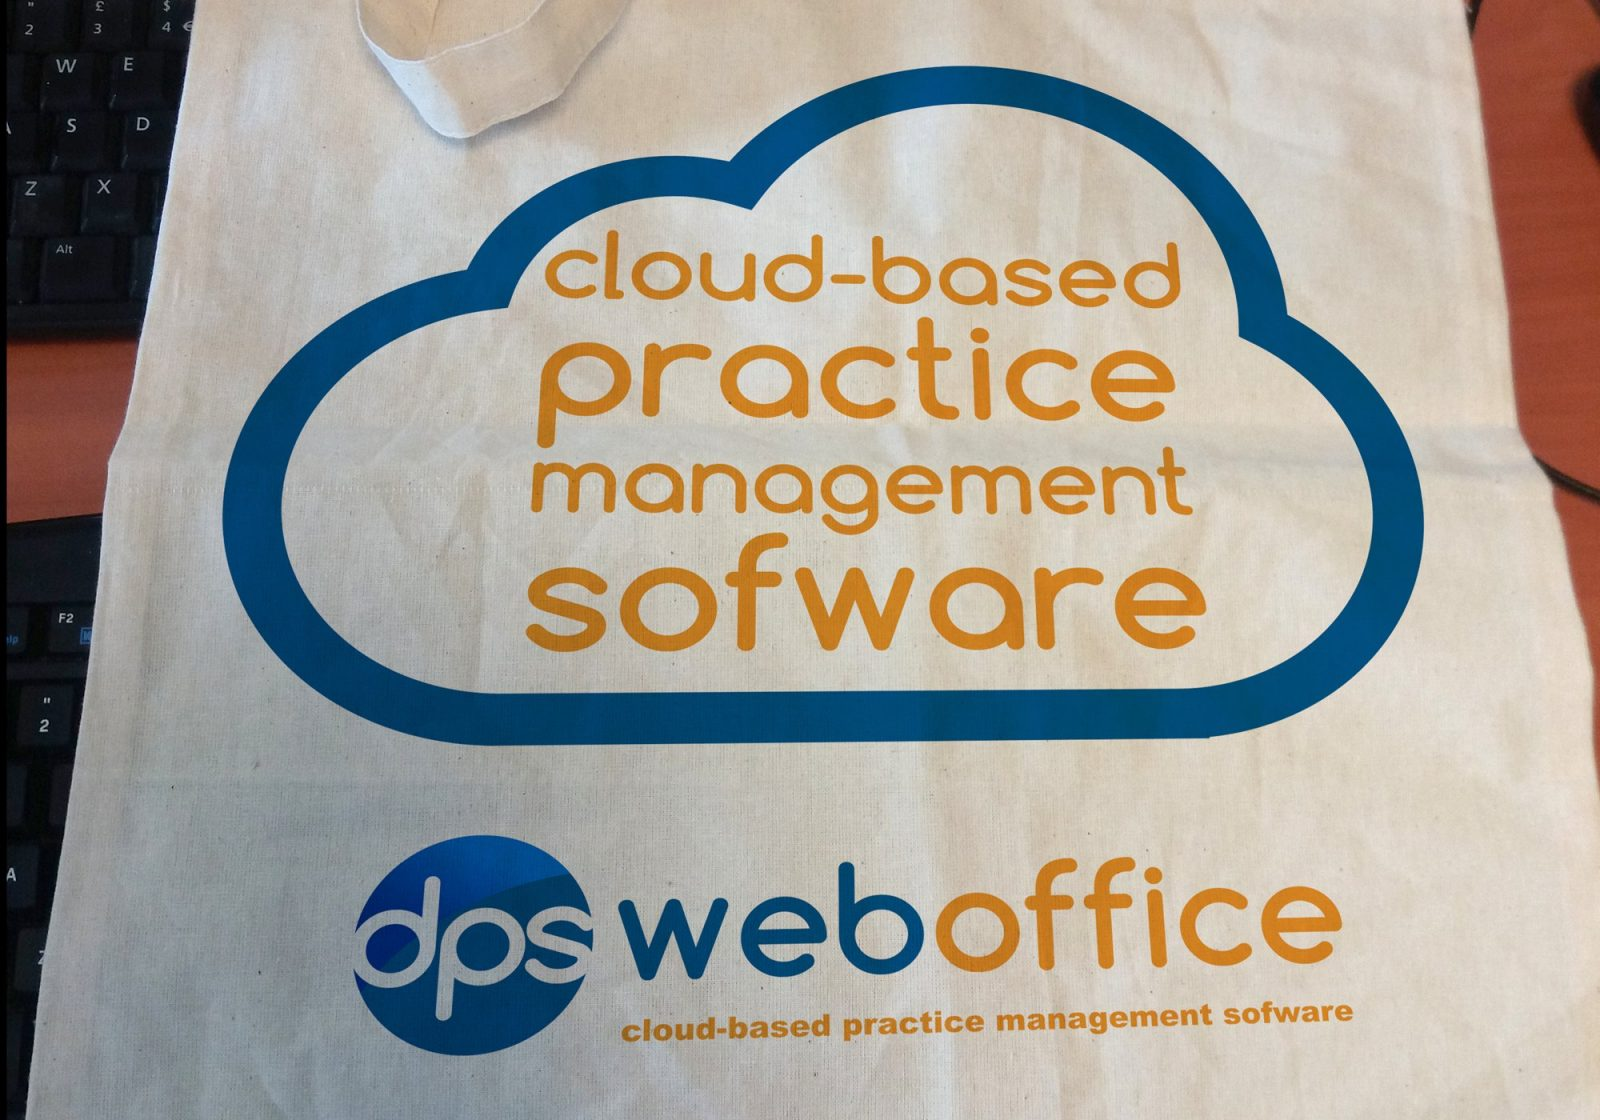 A tote bag for DPS Software showing the cloud logo and text